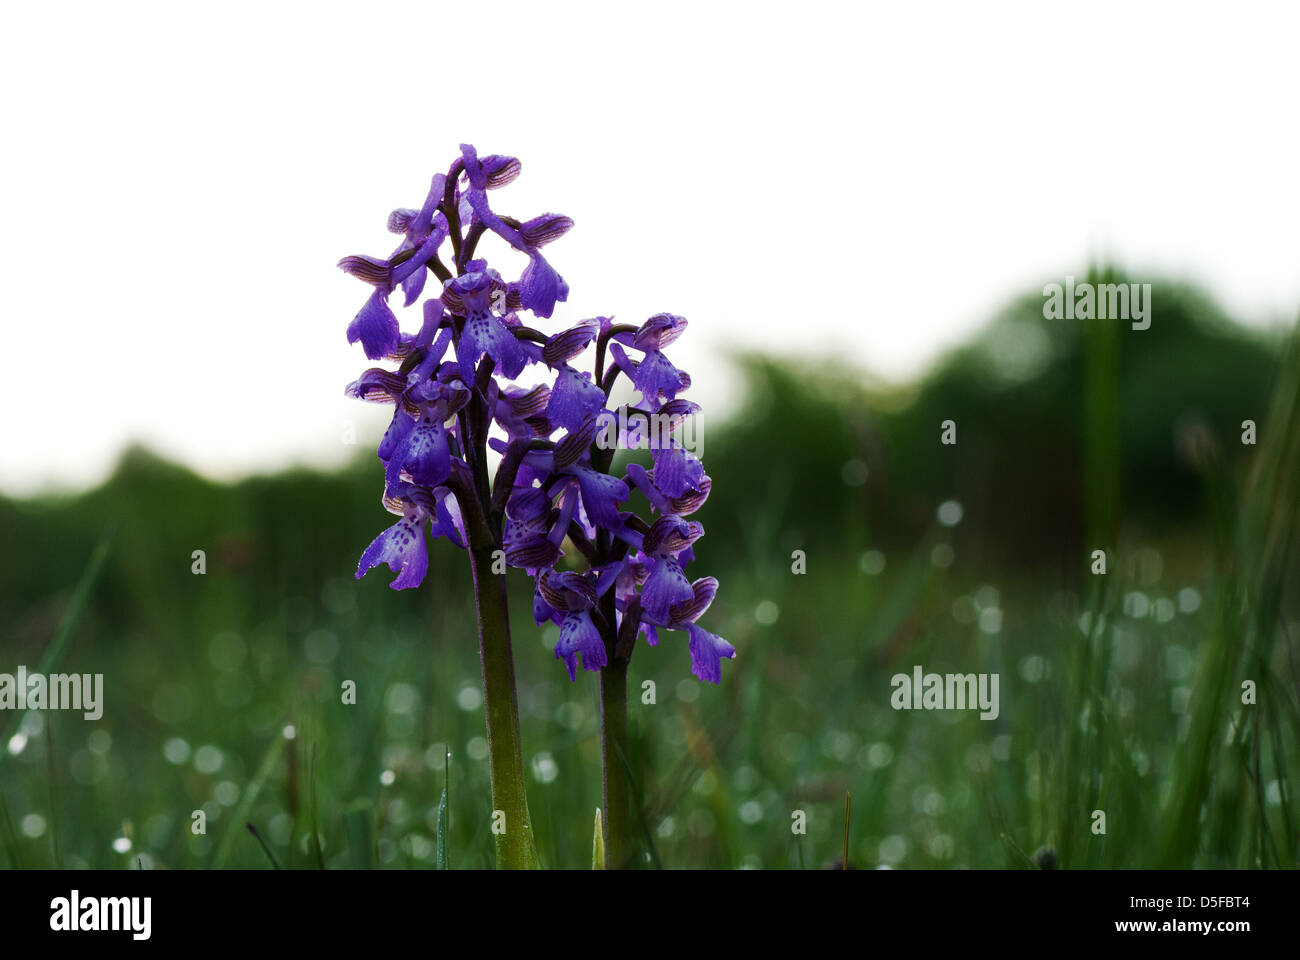 Among dewdrops in summer morning - Stock Image